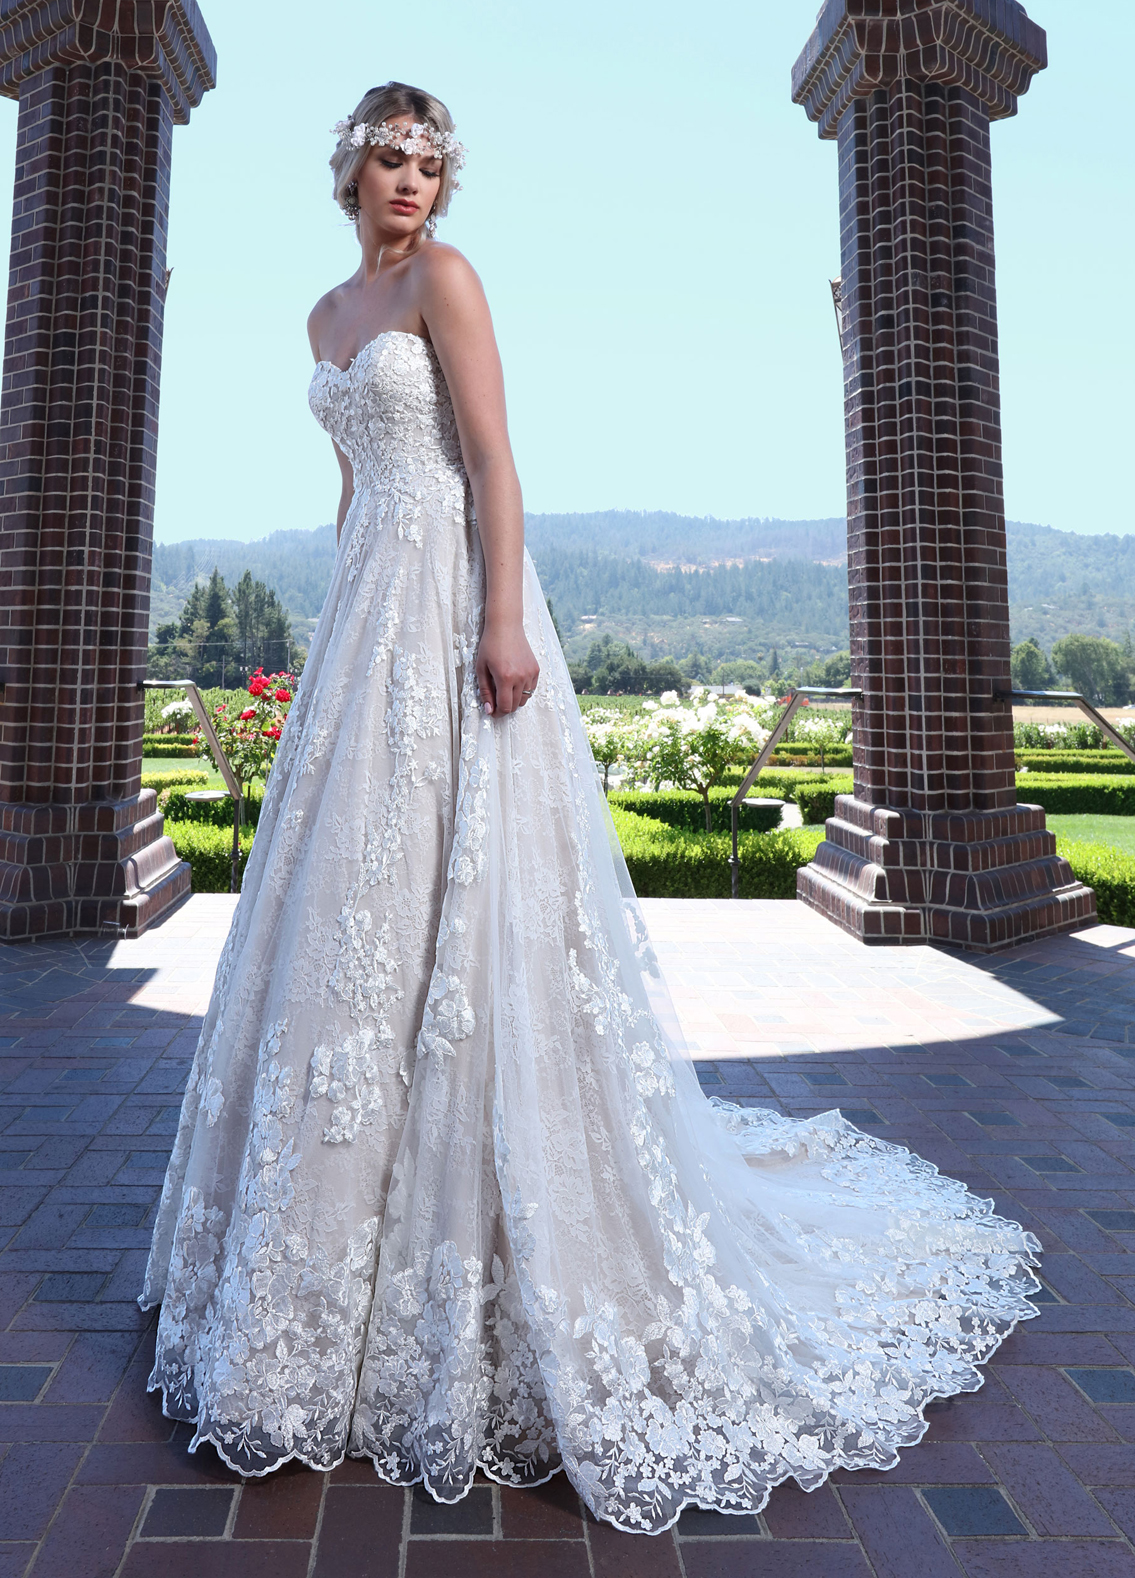 Designer Wedding Gowns Style Guide By Ashley Justin Bride